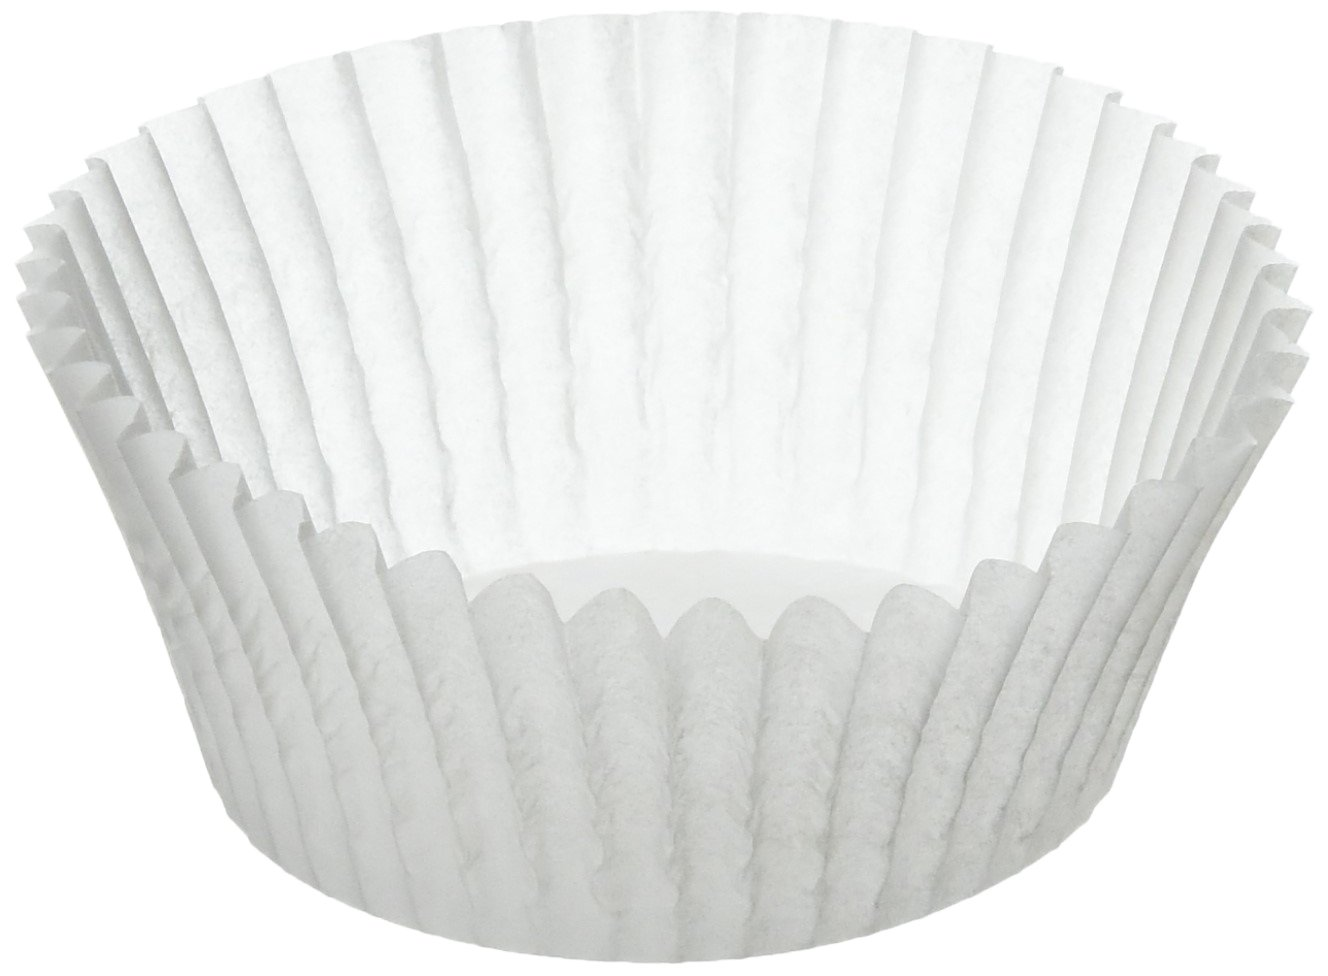 KAISER Creativ Muffin Paper Cups Pack of 200 White /Ø 7 cm High-Quality and Easily Removable Greaseproof Paper Ideal for Sweet and Savoury